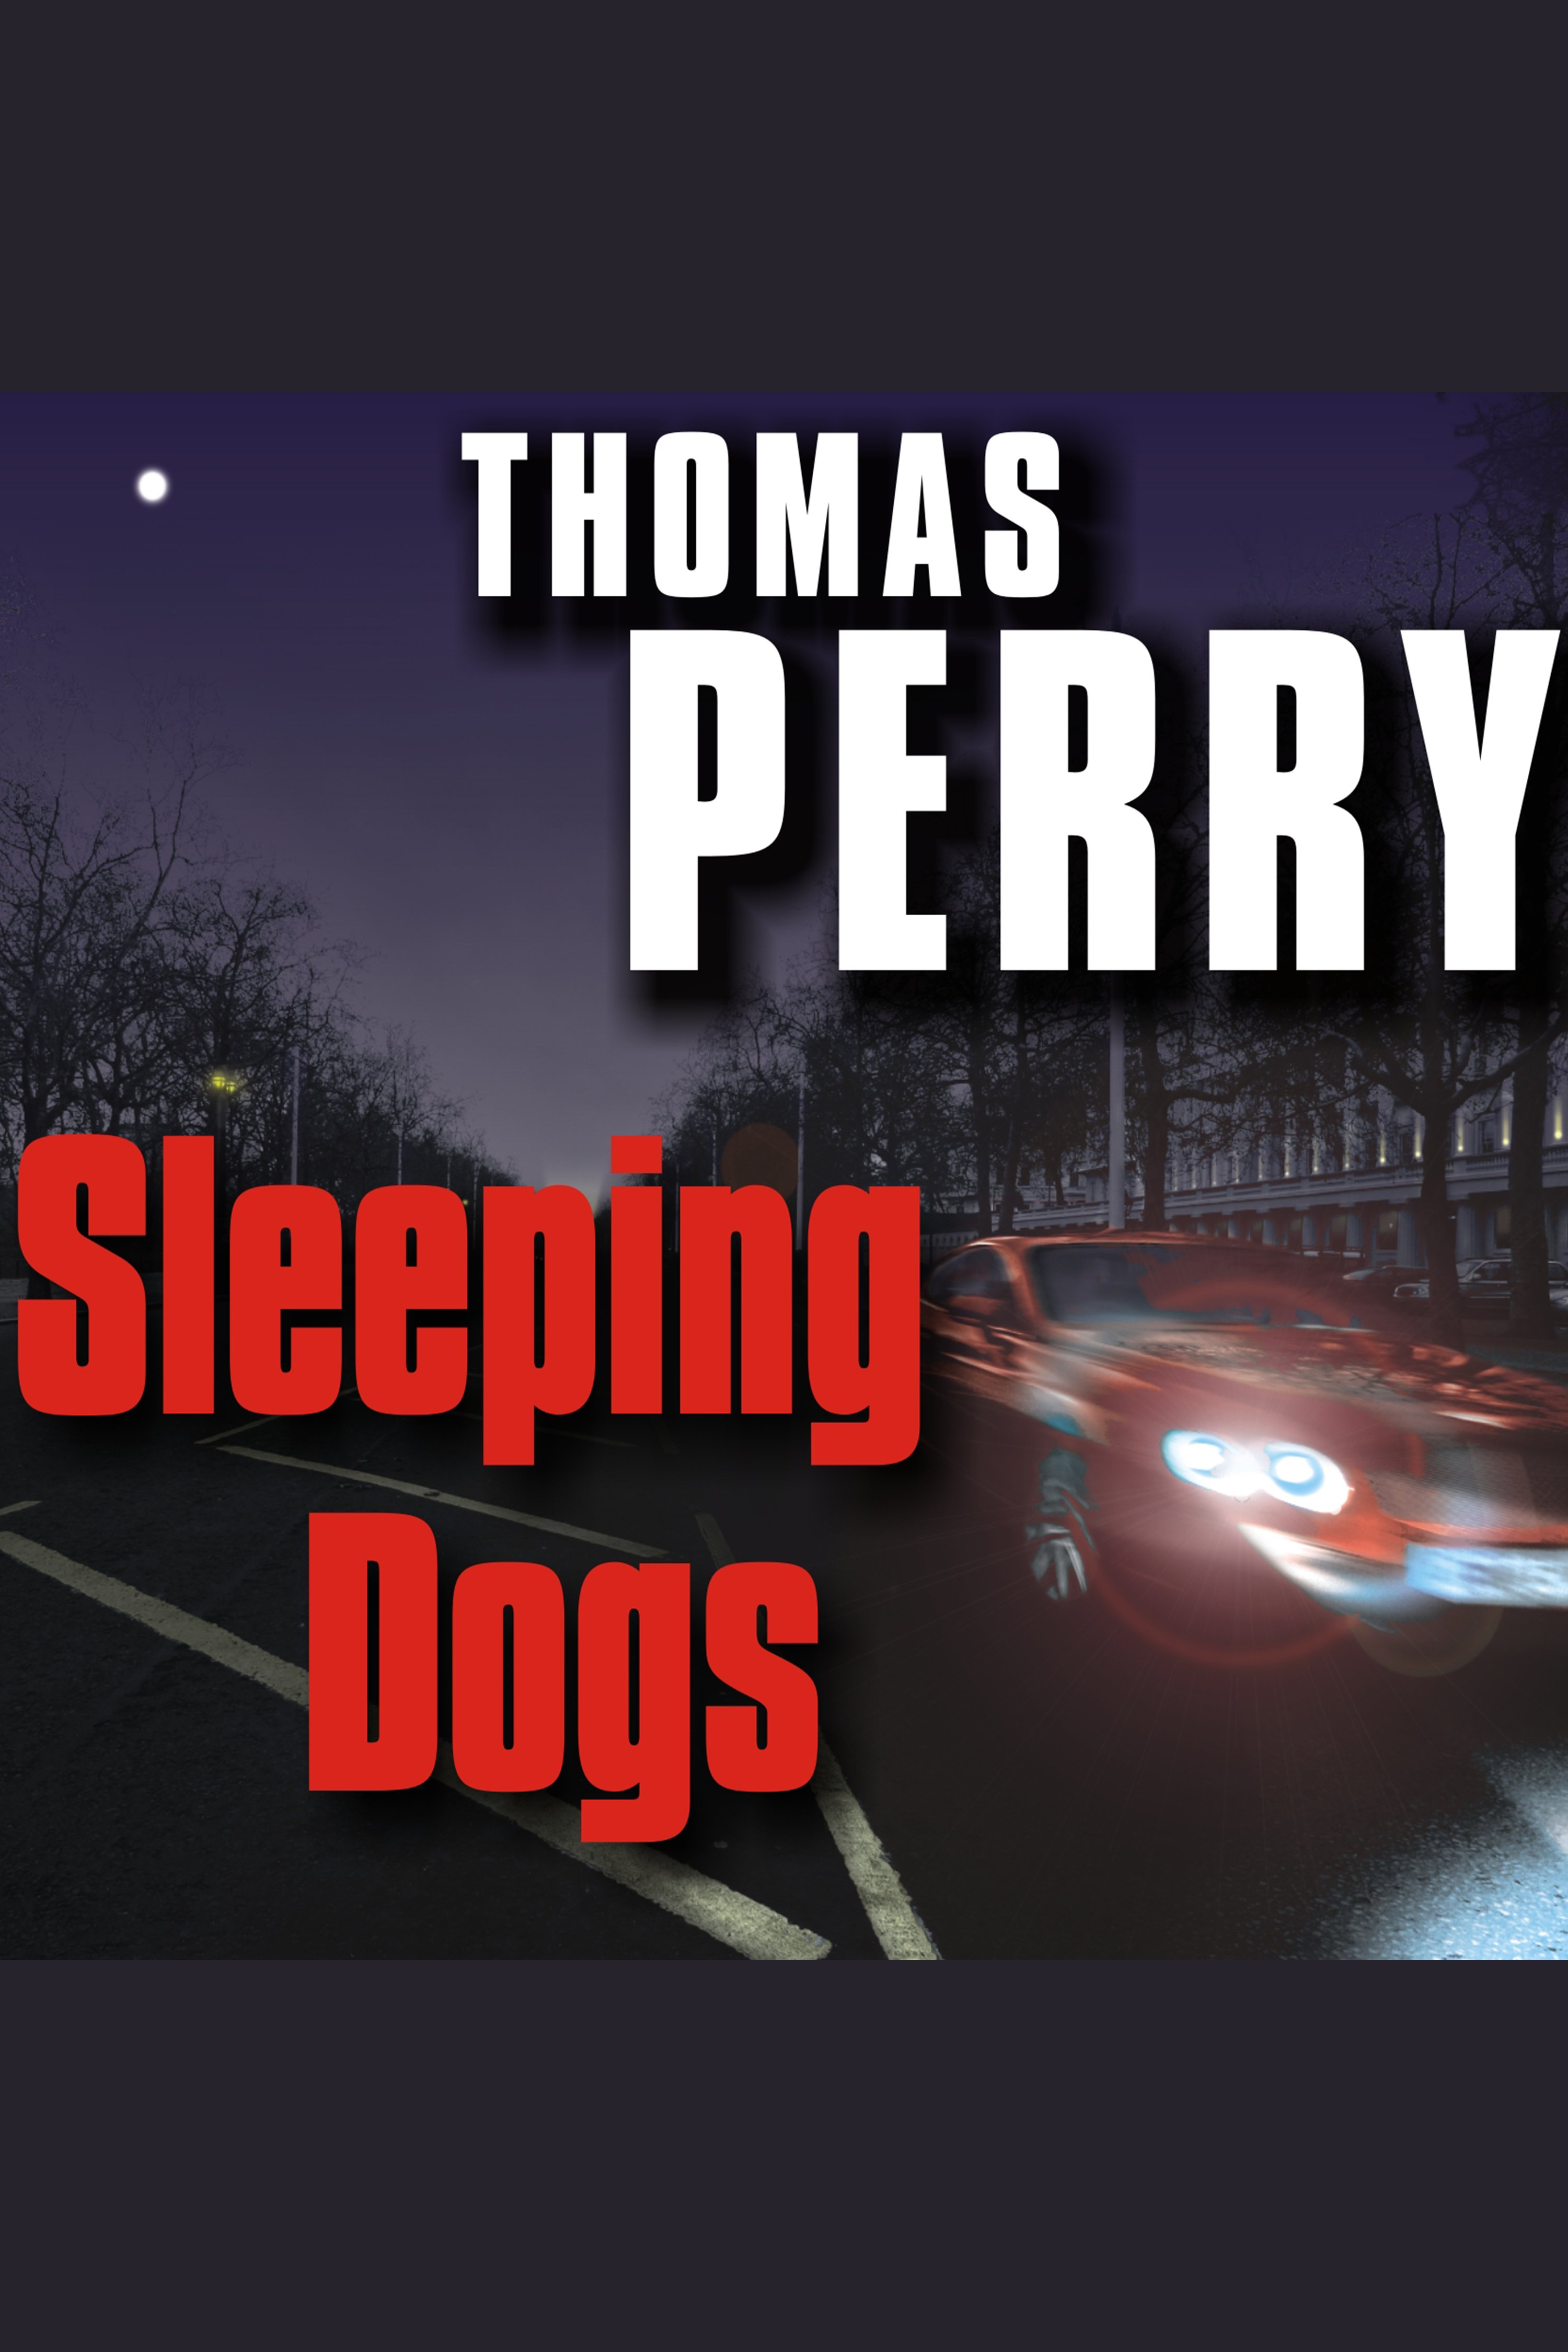 Sleeping dogs cover image